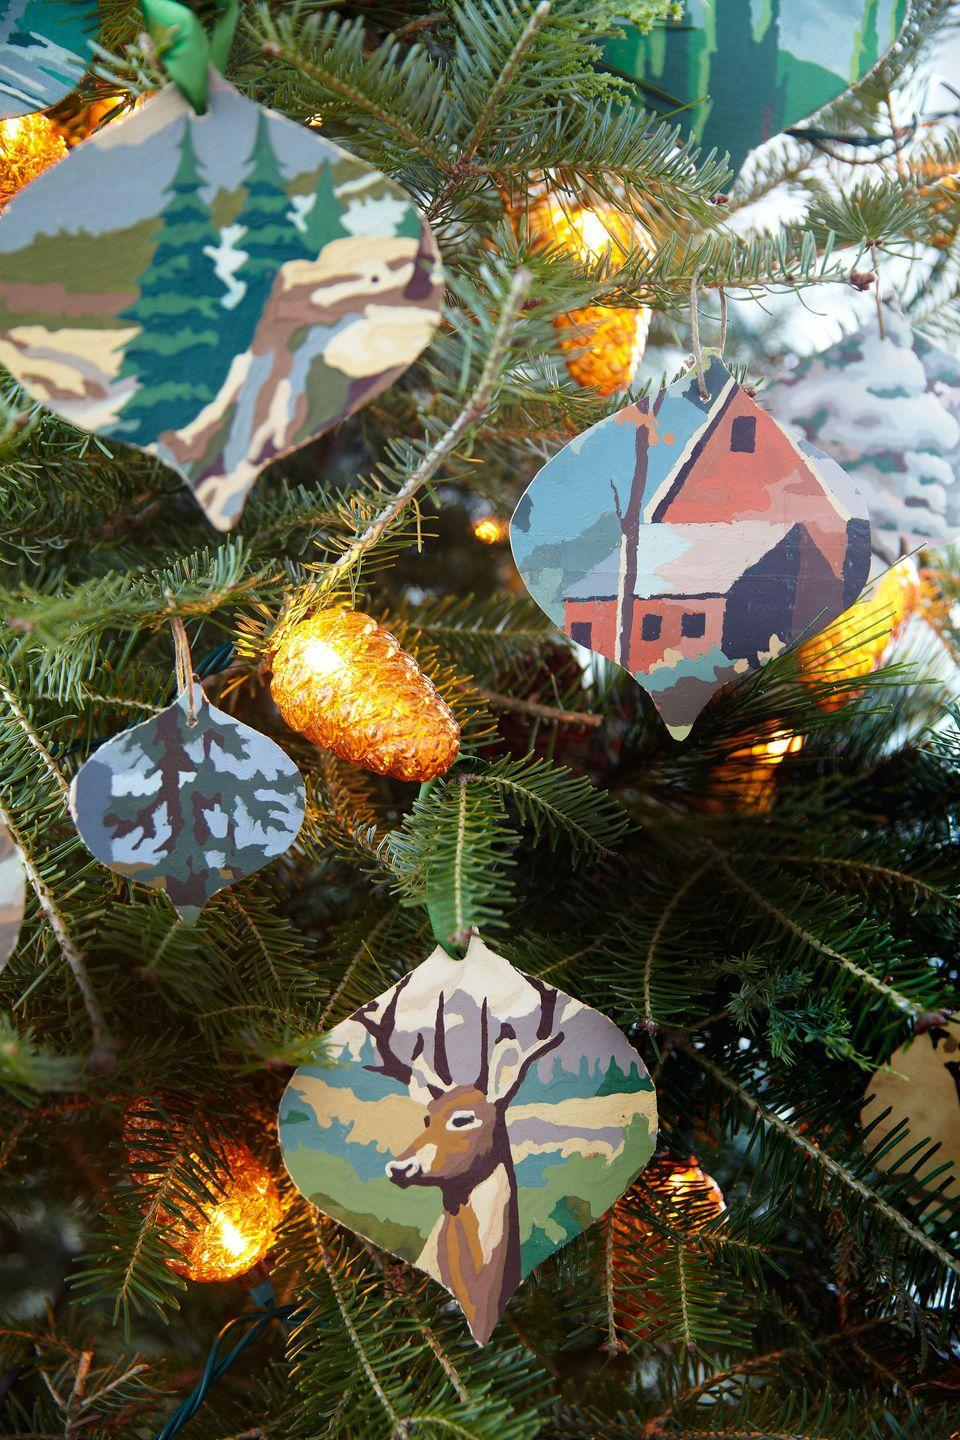 """<p>A dime a dozen at flea markets, a few of these amateur paintings can yield scads of one-of-a-kind tree trimmers. """"I've always been inspired by the shape of vintage ornaments,"""" says <a href=""""https://www.countryliving.com/home-design/decorating-ideas/g1570/serena-thompson-christmas-decorating-ideas/#slide-3"""" rel=""""nofollow noopener"""" target=""""_blank"""" data-ylk=""""slk:the creator"""" class=""""link rapid-noclick-resp"""">the creator</a>, who cut out the silhouettes using heavy-duty scissors.</p><p><strong><a href=""""https://www.countryliving.com/ornament"""" rel=""""nofollow noopener"""" target=""""_blank"""" data-ylk=""""slk:Get the template."""" class=""""link rapid-noclick-resp"""">Get the template.</a></strong></p>"""